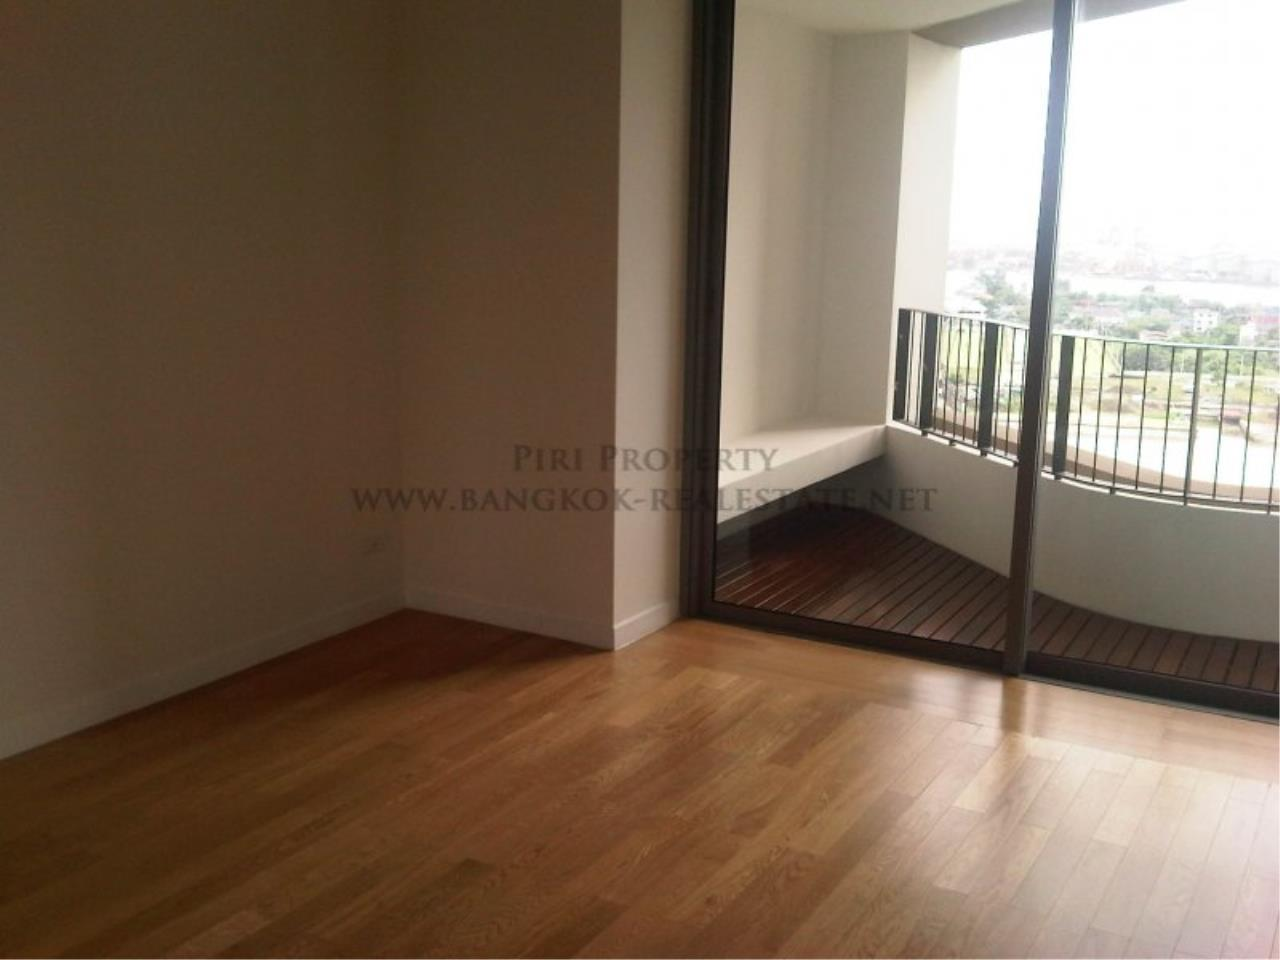 Piri Property Agency's The Pano - Two Bedroom Unit with River View for Rent 3